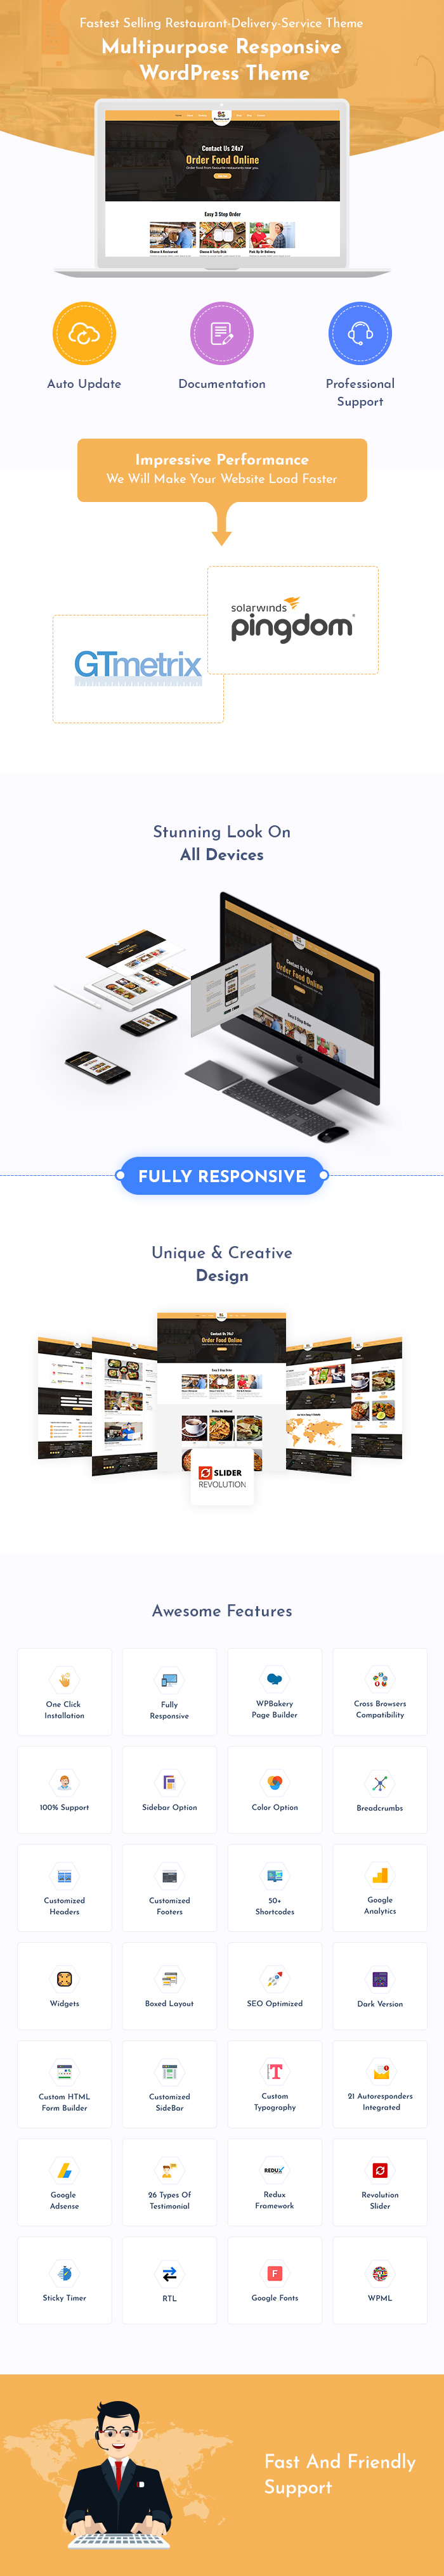 Restaurant Delivery WordPress Themes